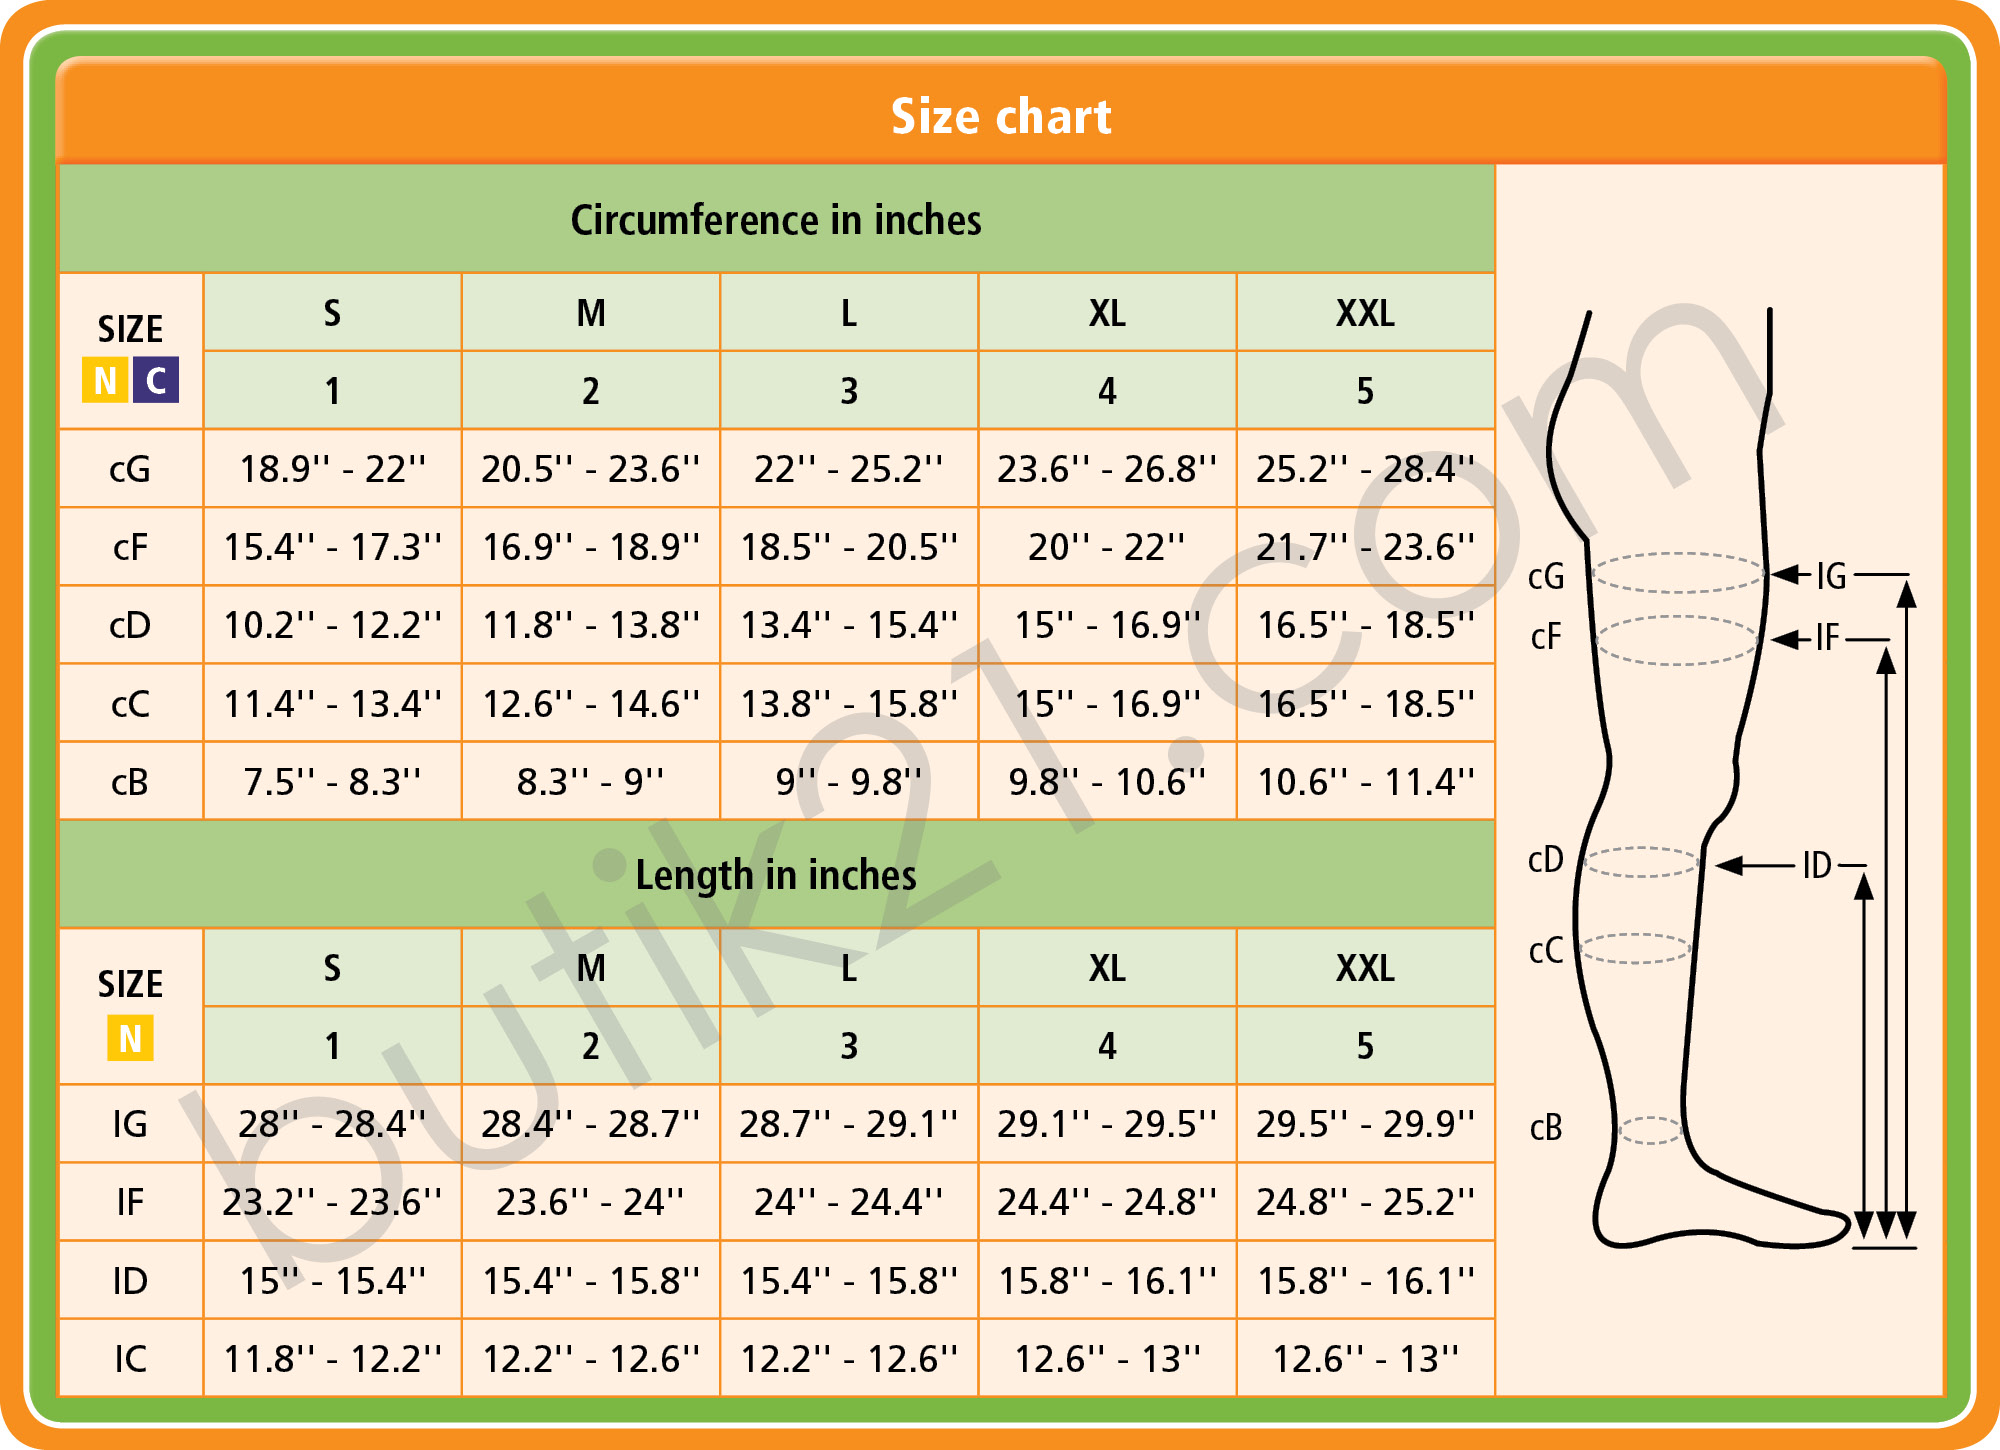 Size chart medical compression socks (tigh)